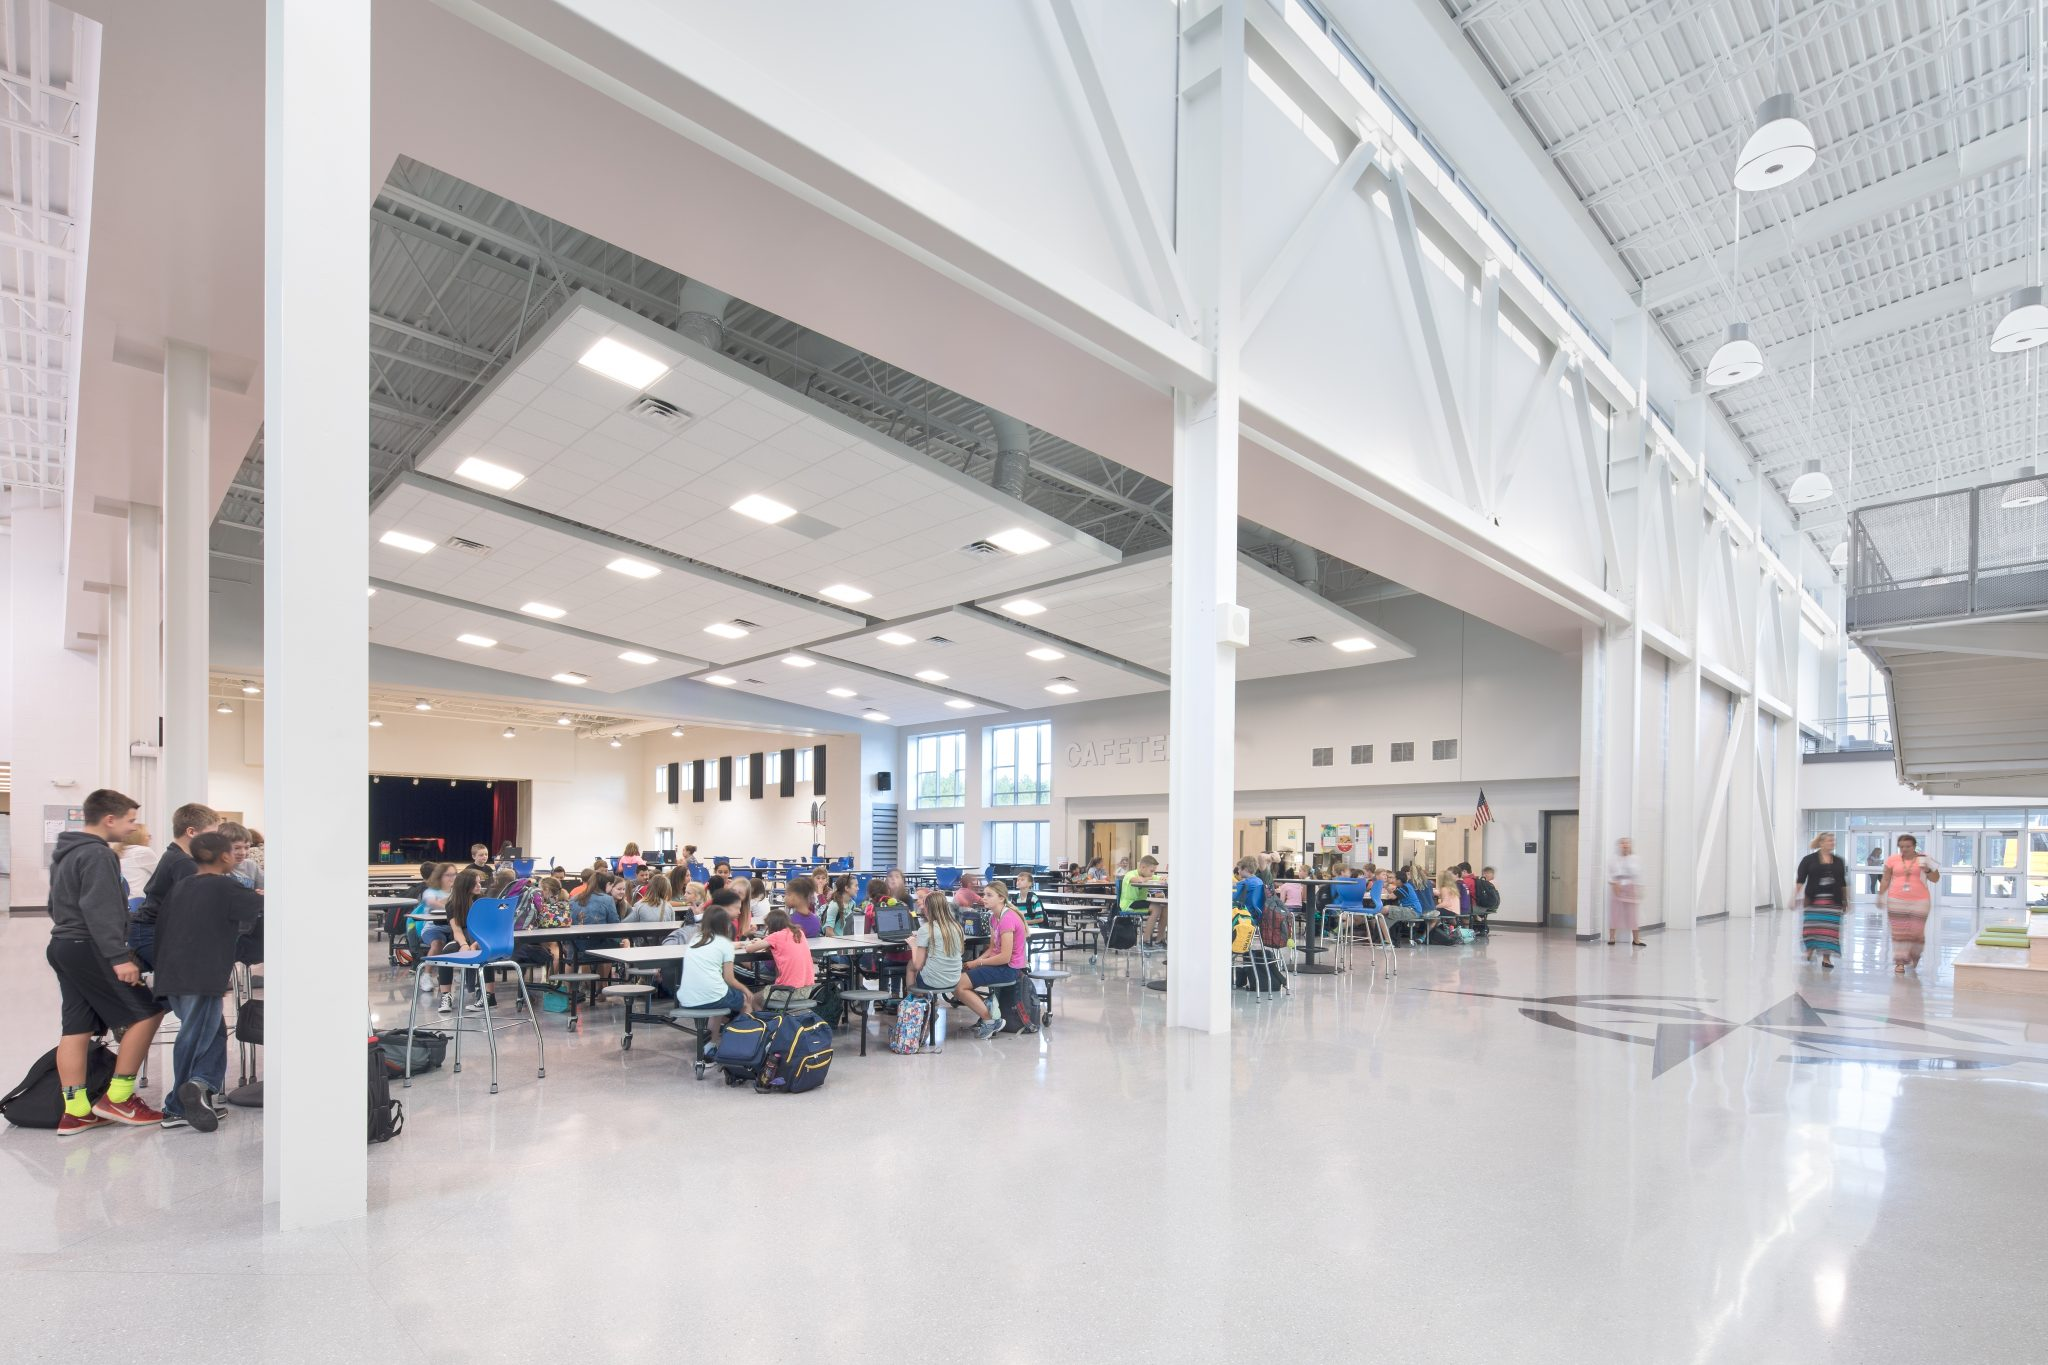 Classroom Block Design ~ Dixon middle school — smith sinnett architecture